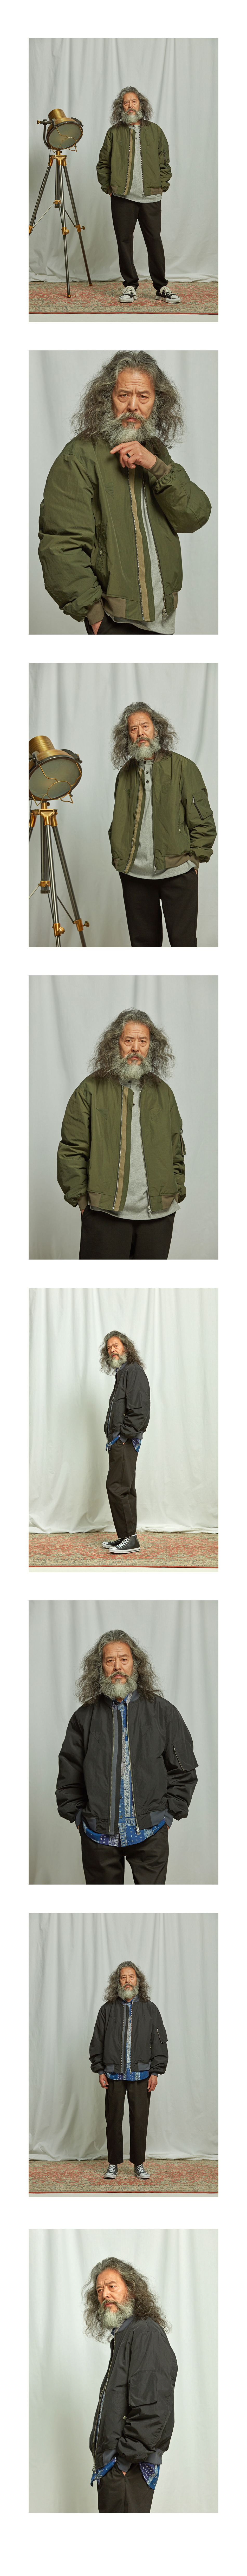 프리즘웍스 Dover MA-1 flight jacket _ black